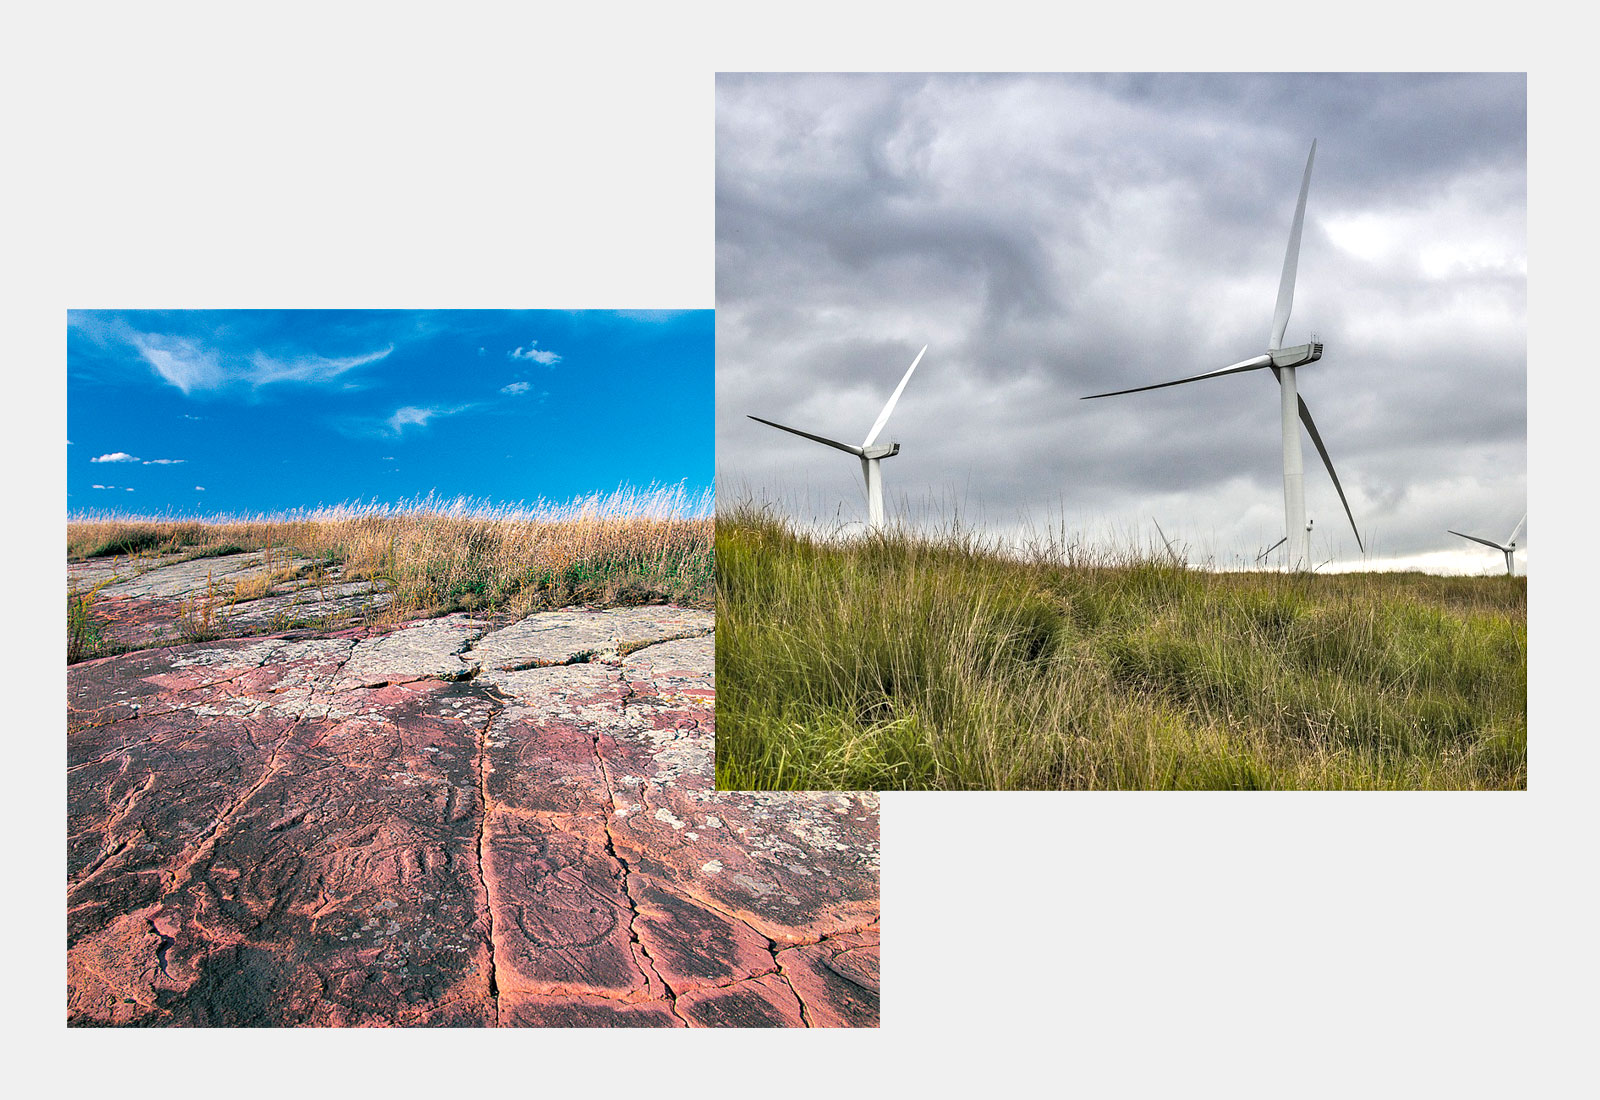 Side by side are two pictures, one of the petroglyphs and prairie and one of two wind turbines on a prairie.